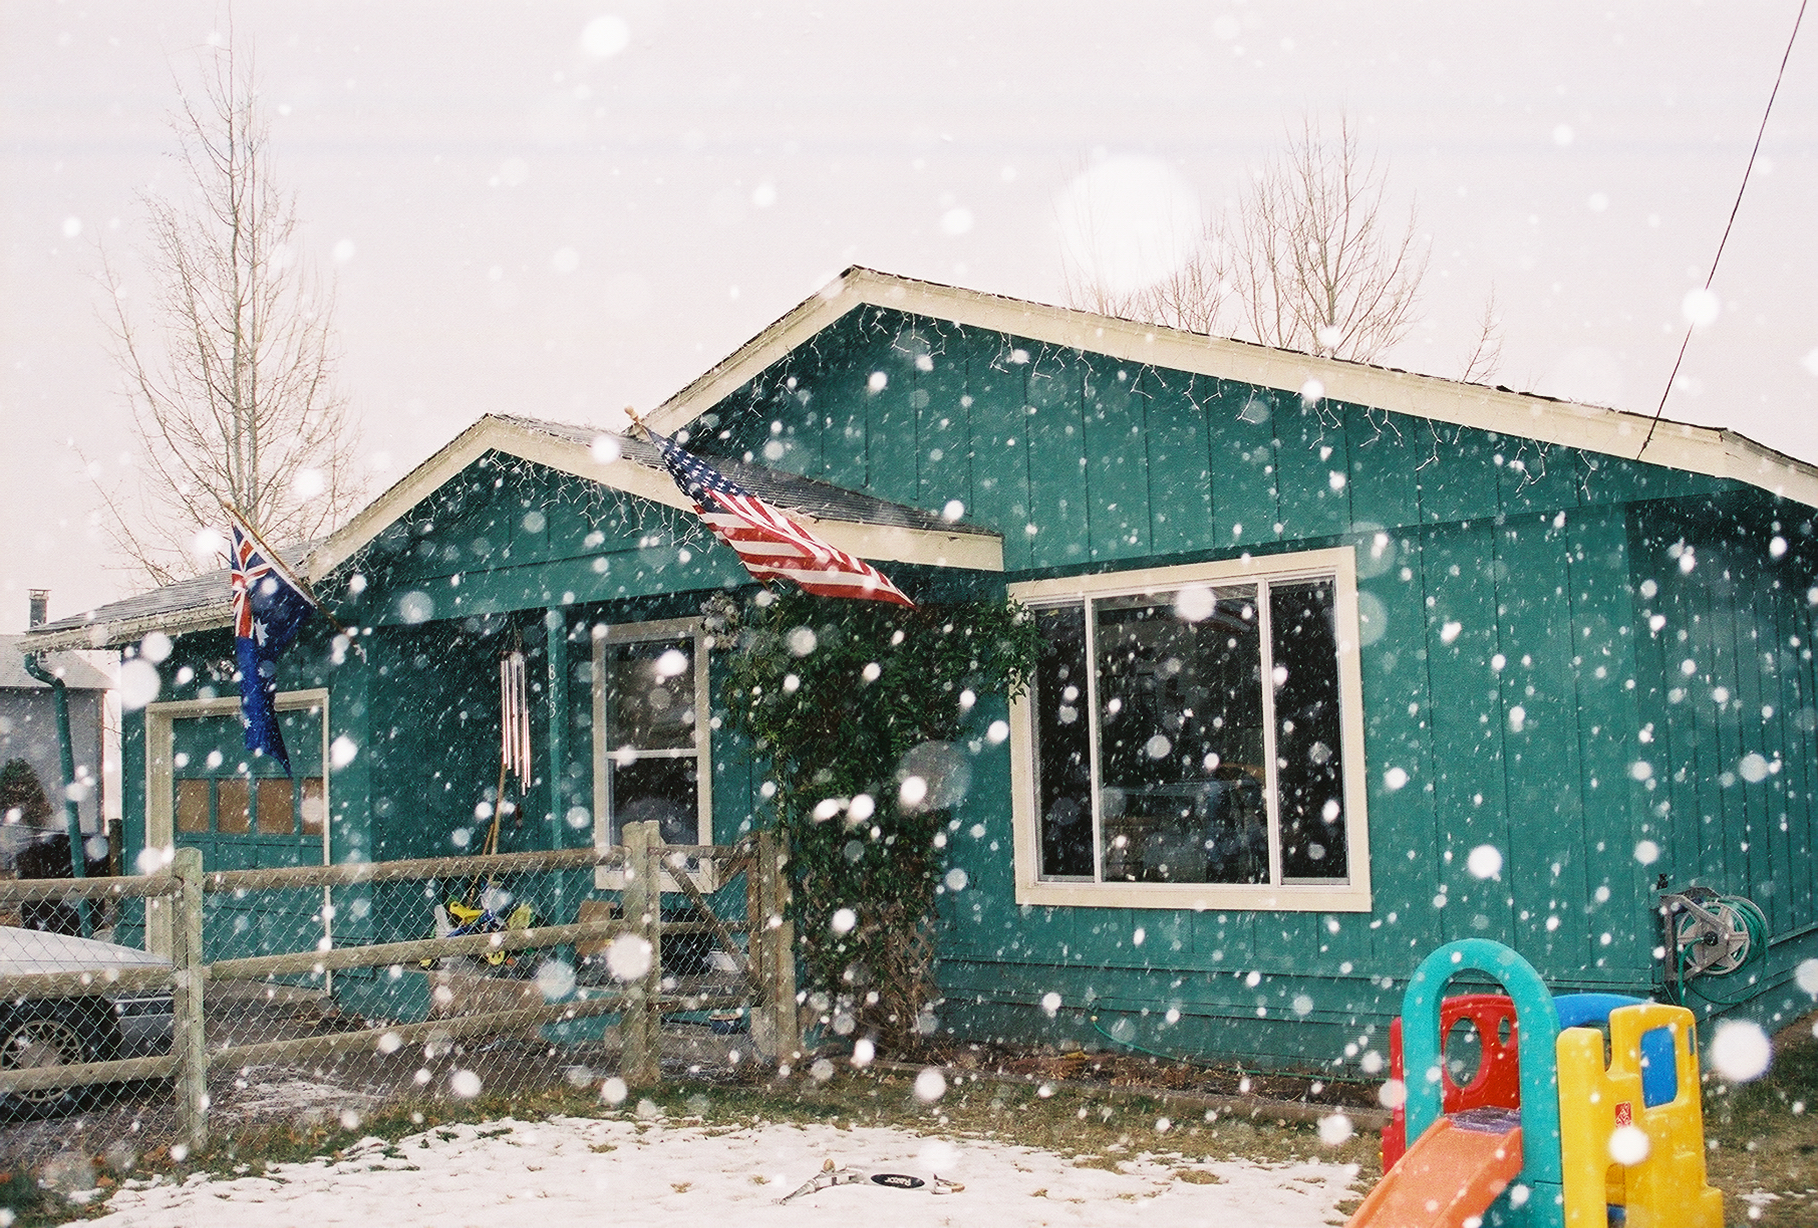 Snowing for Christmas!